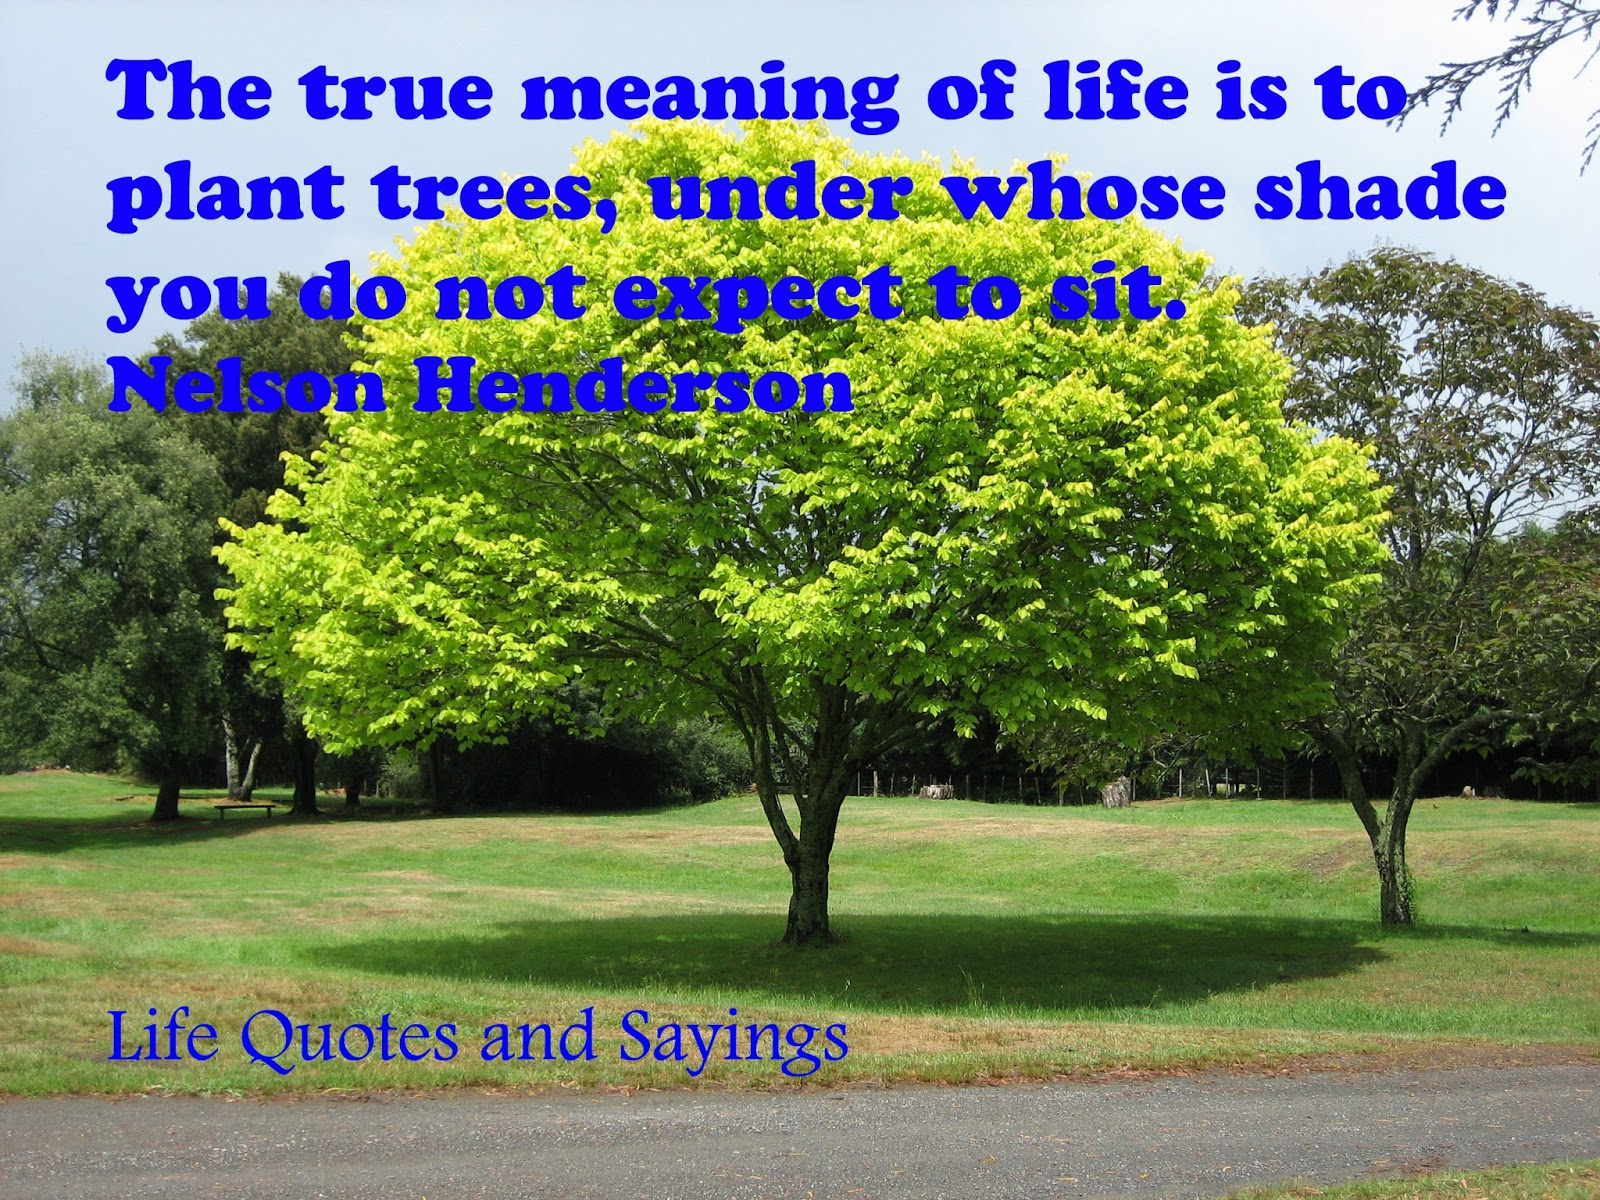 Plant Trees Under Whose Shade Quote : Life quotes and sayings